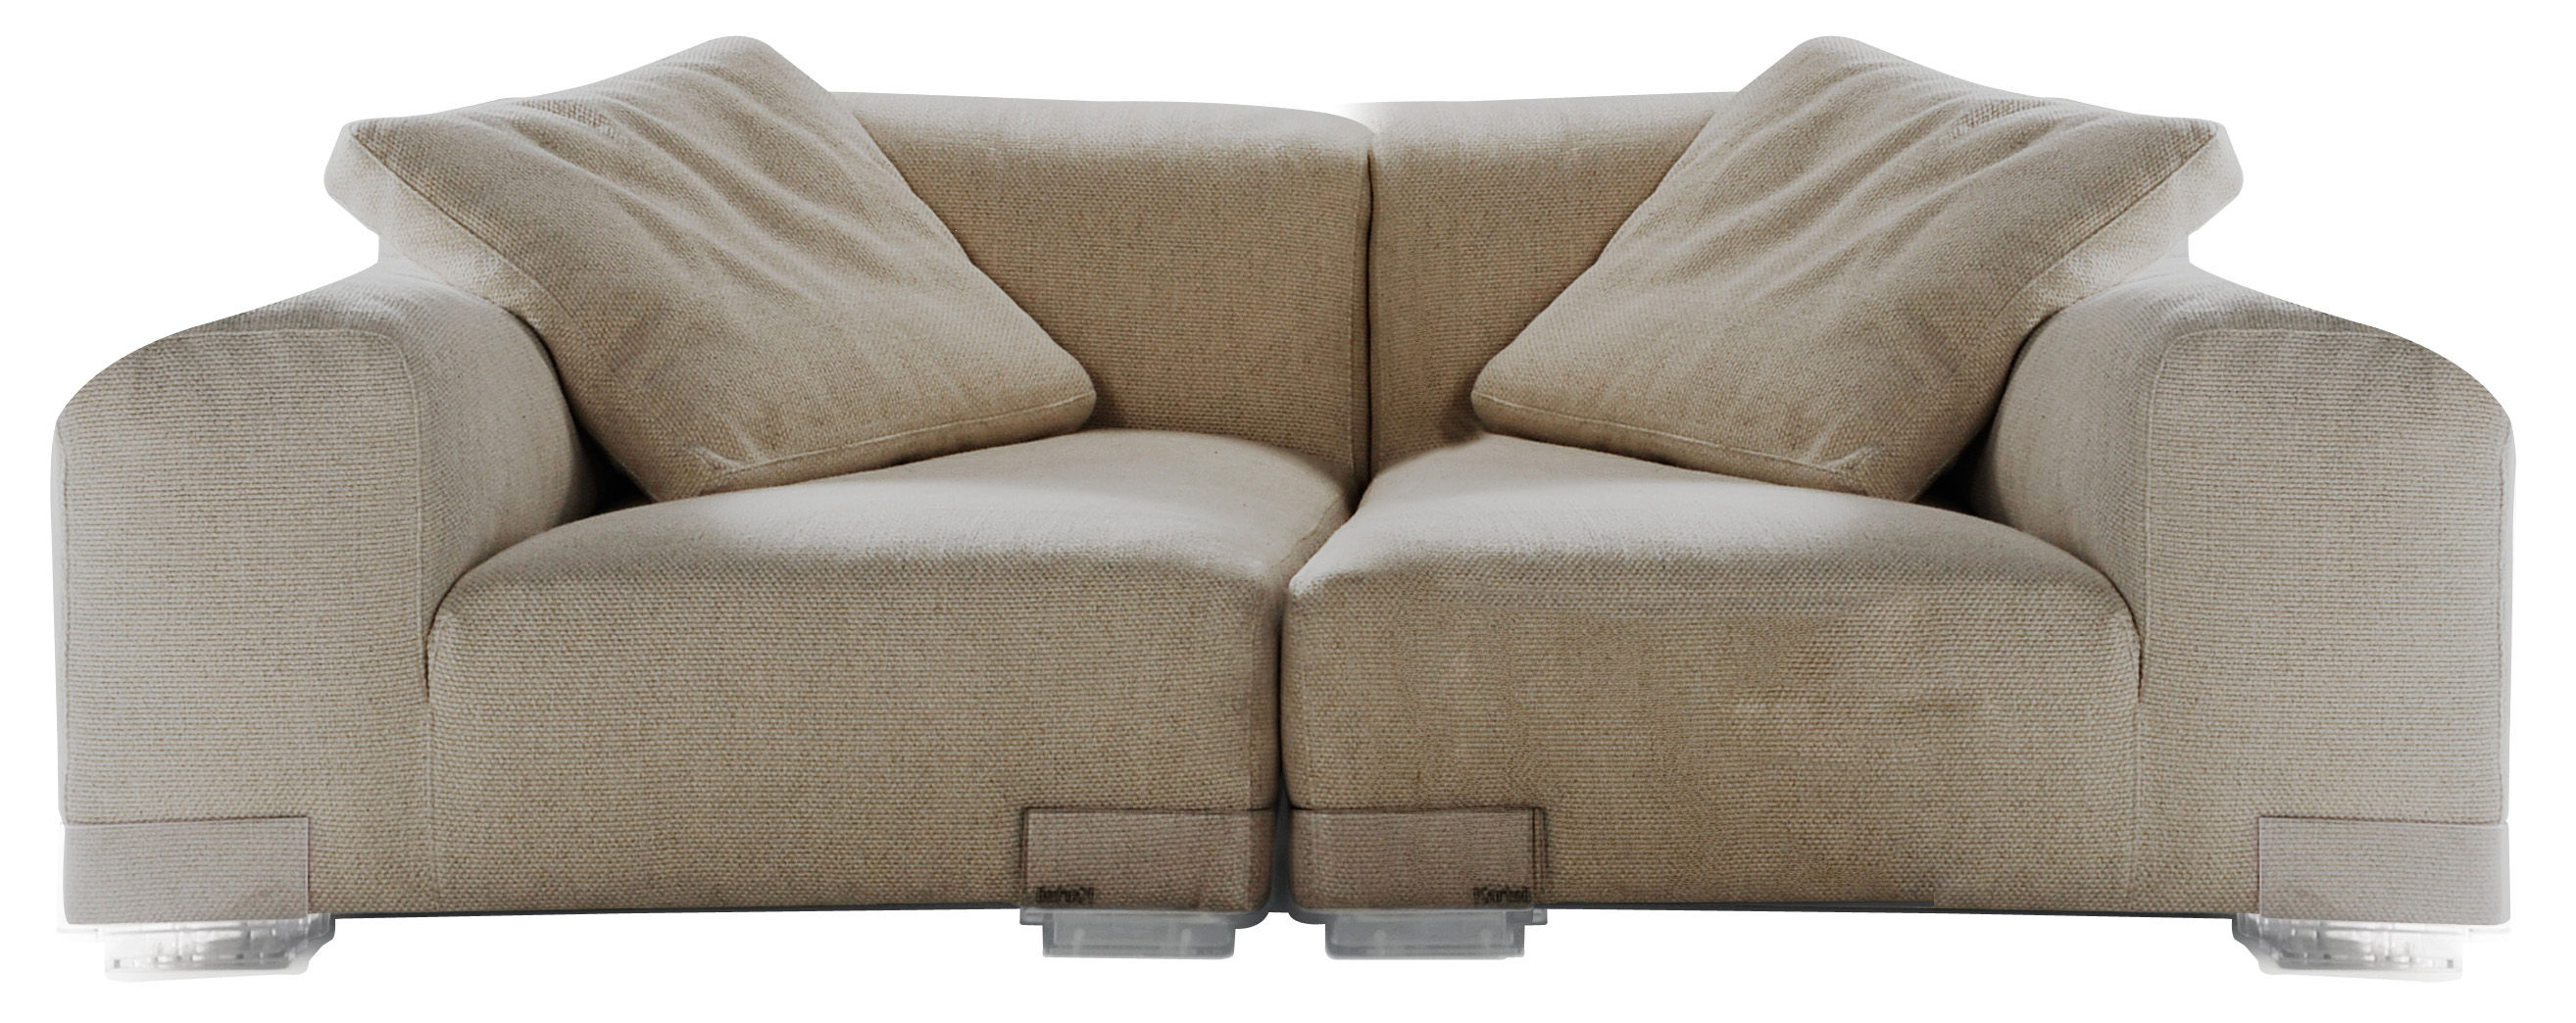 Living Divani Neowall Sofa Bed Sofa Living Divani Sofa Bed With Removable Cover Wall Sofa